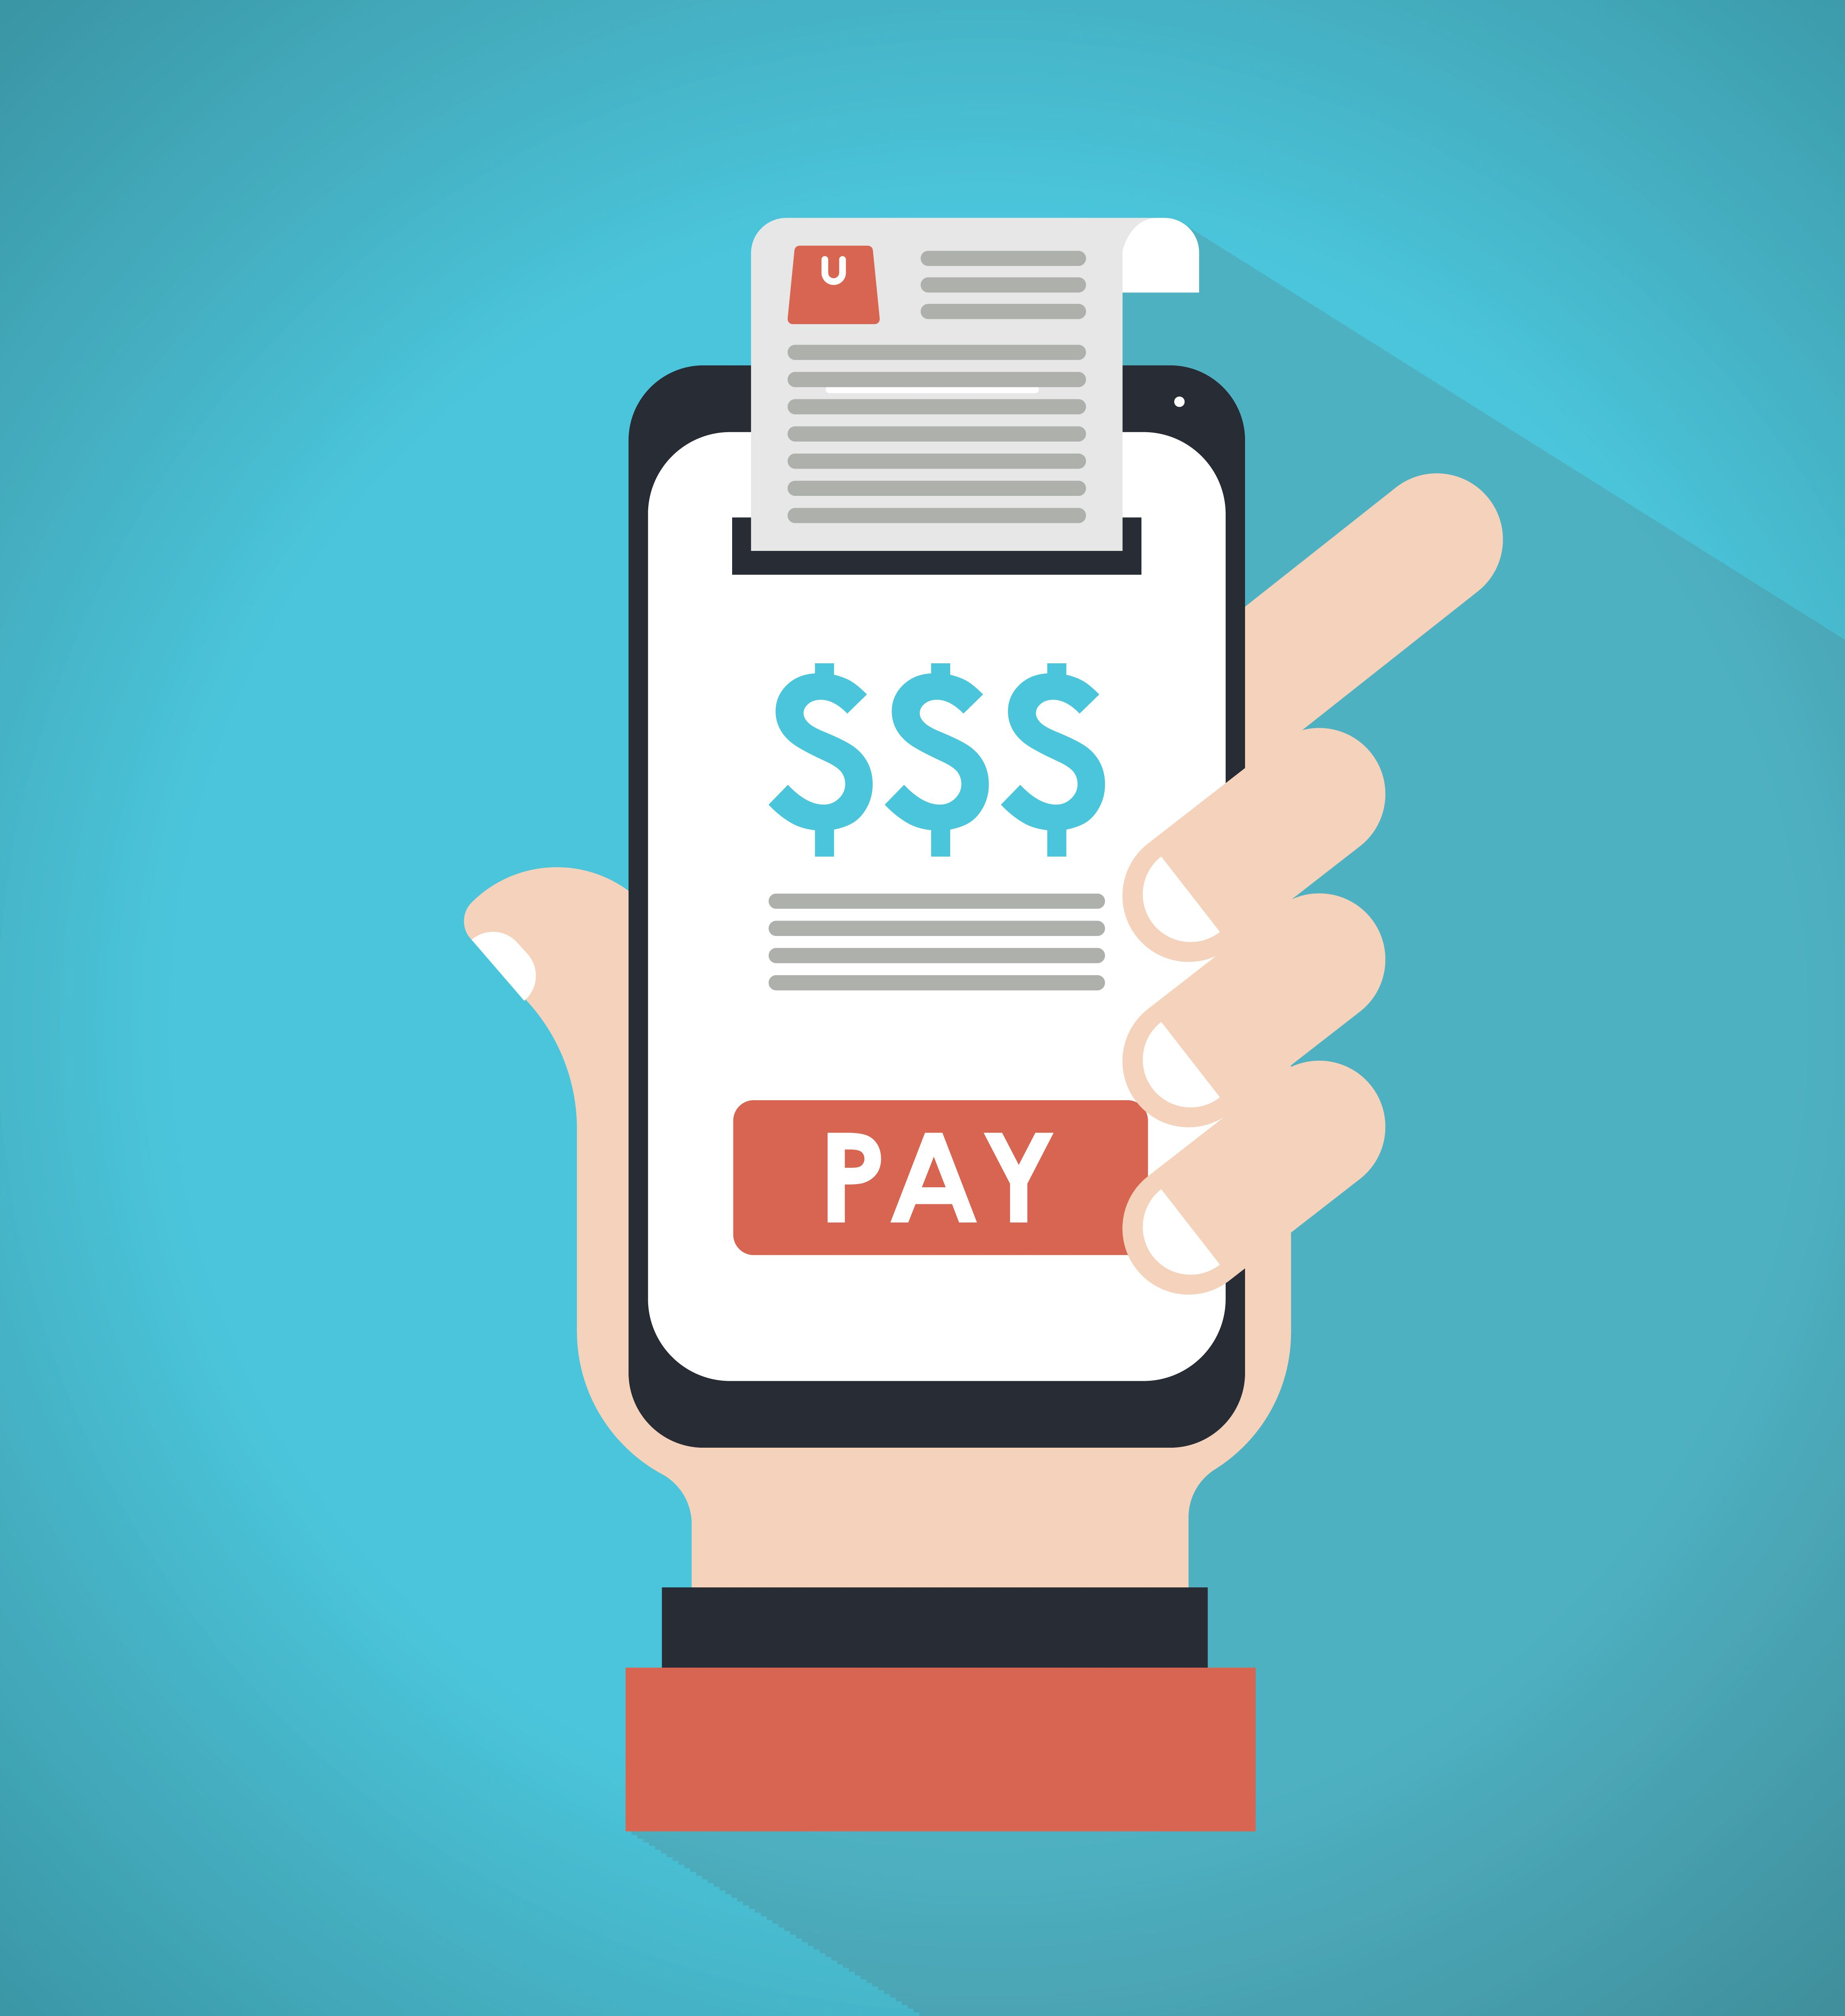 What is a Social Payment?